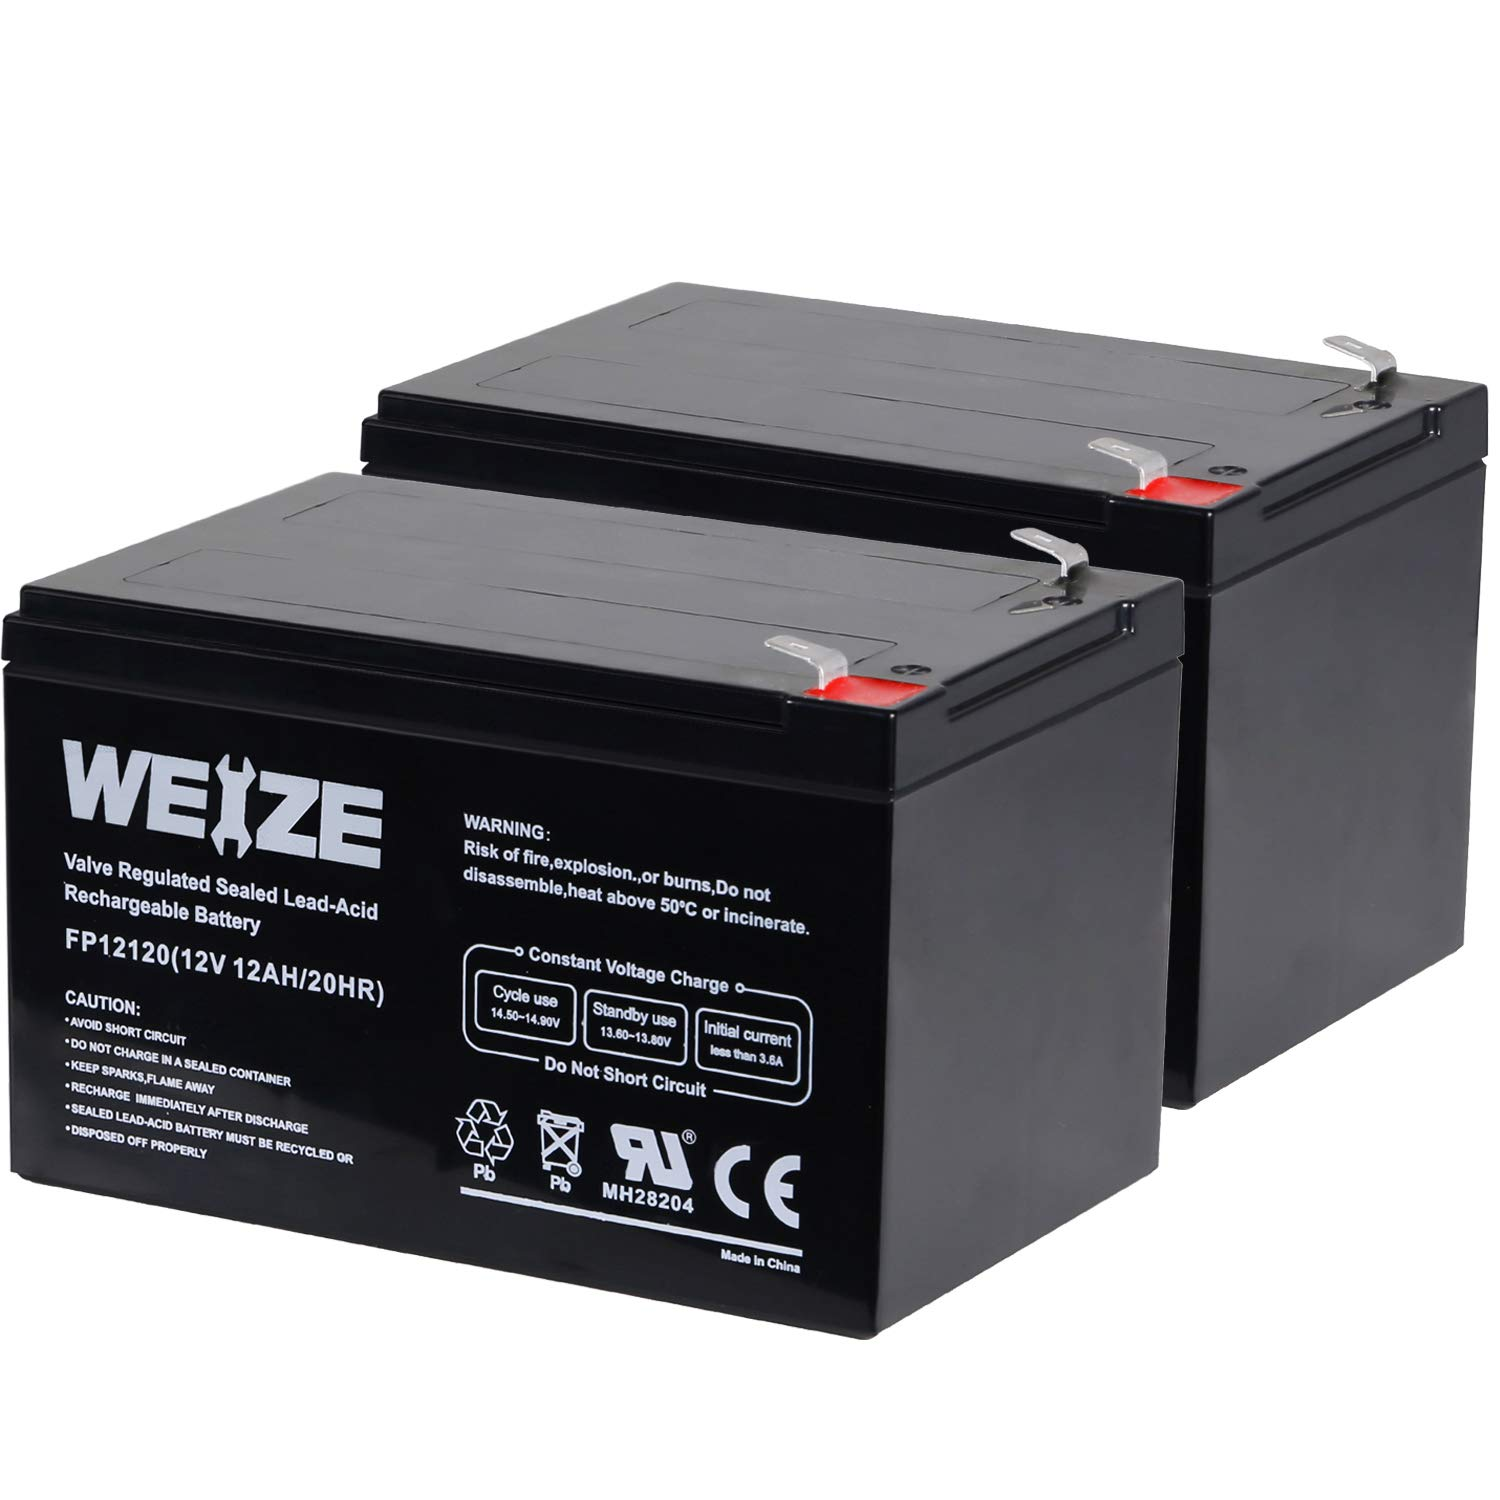 Weize 12 Volt 12AH SLA Rechargeable Battery Replace UB12120, EXP1212, 6FM12, LHR12-12, GPS12-12F2, 2 Pack by WEIZE